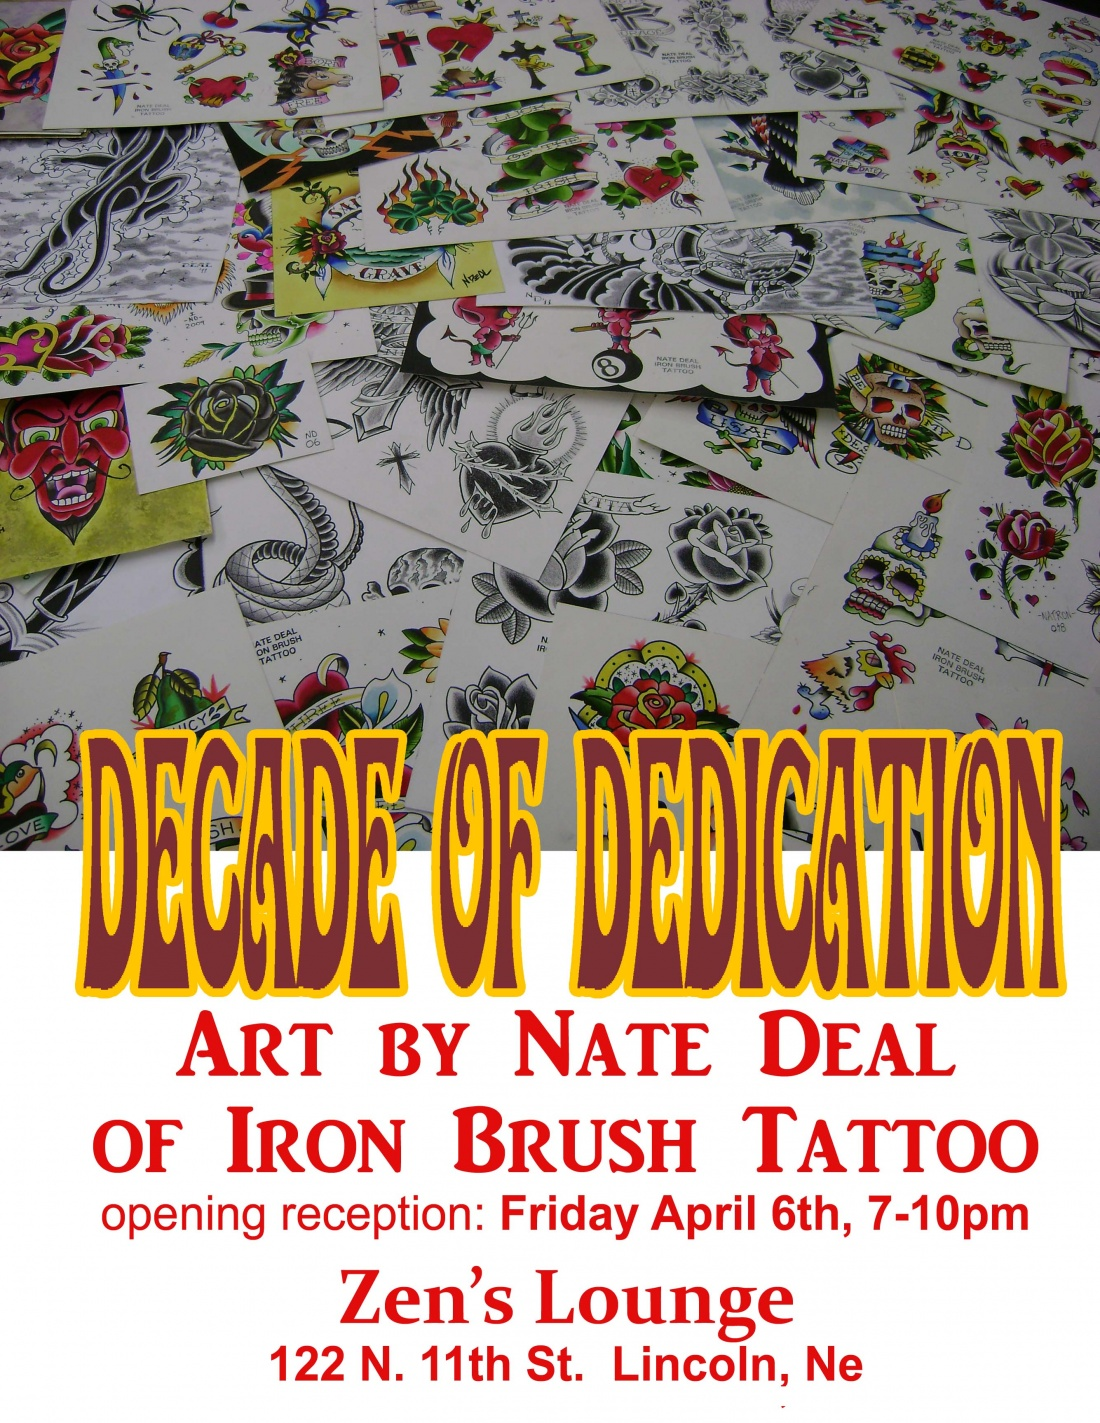 Nate Deal Art Show Zen S Lounge April 6th Iron Brush Tattoo